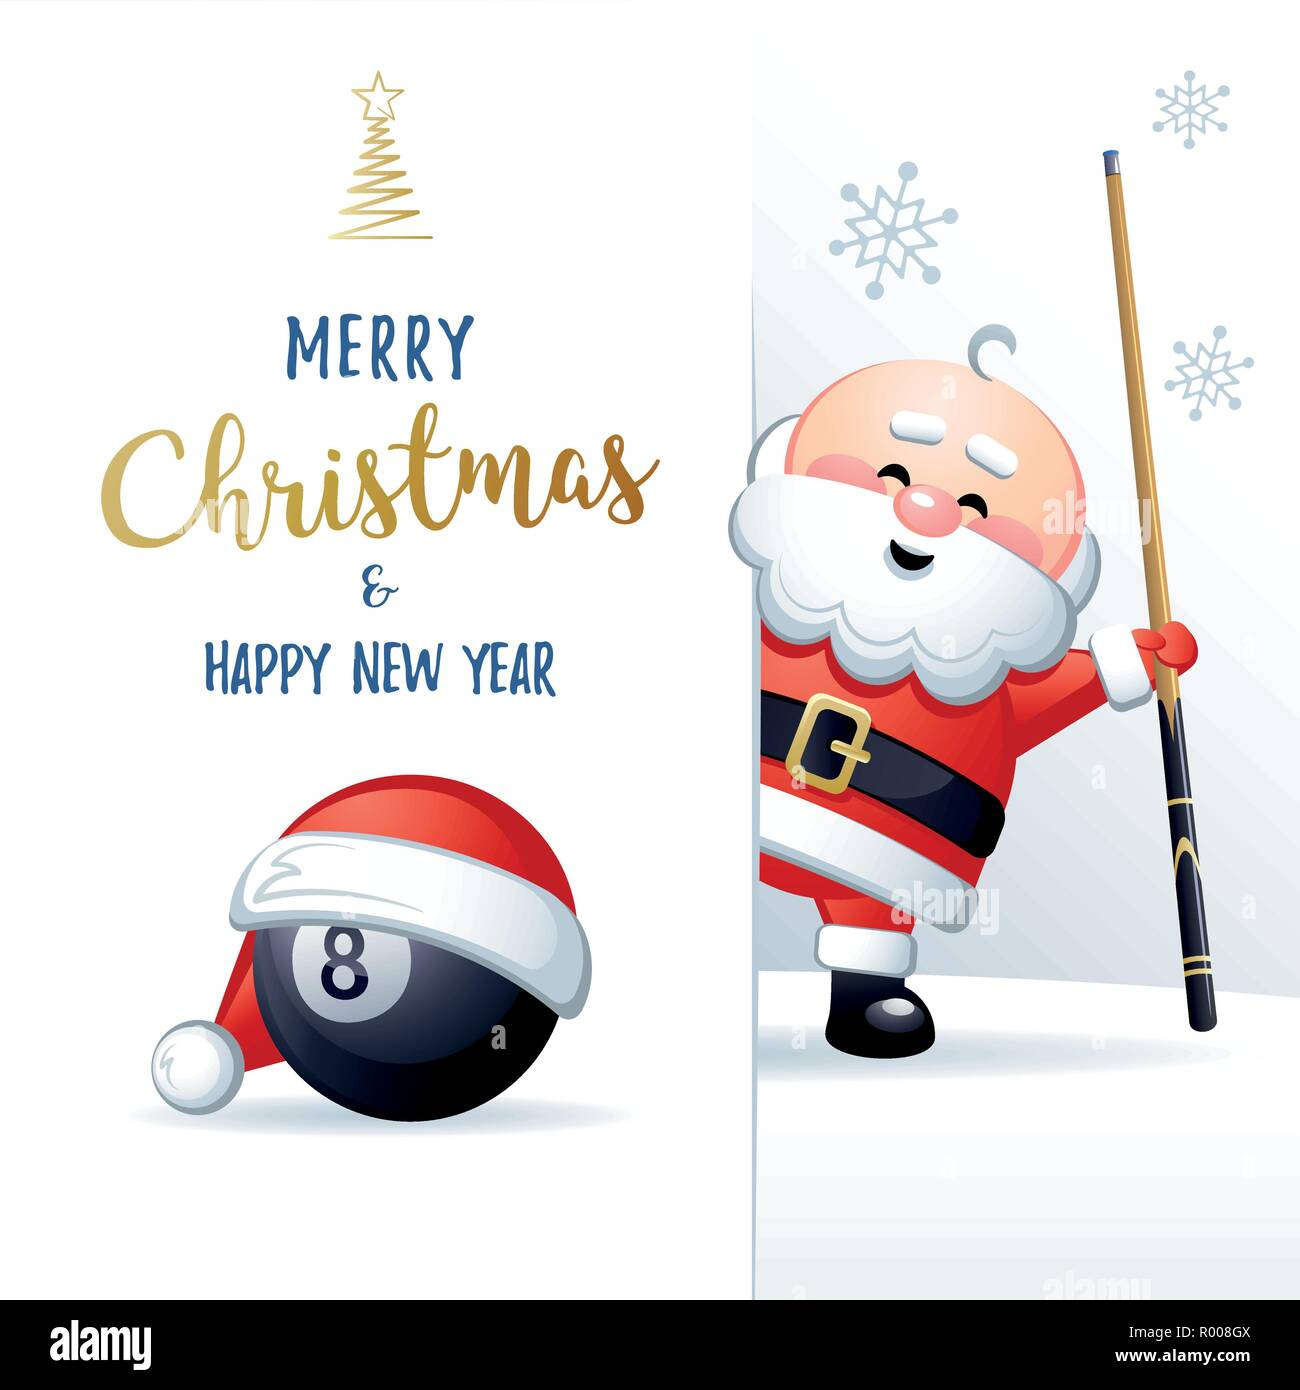 Merry Christmas and Happy New Year. Sports greeting card. Cute Santa Claus with Billiard ball and cue. Vector illustration. - Stock Image